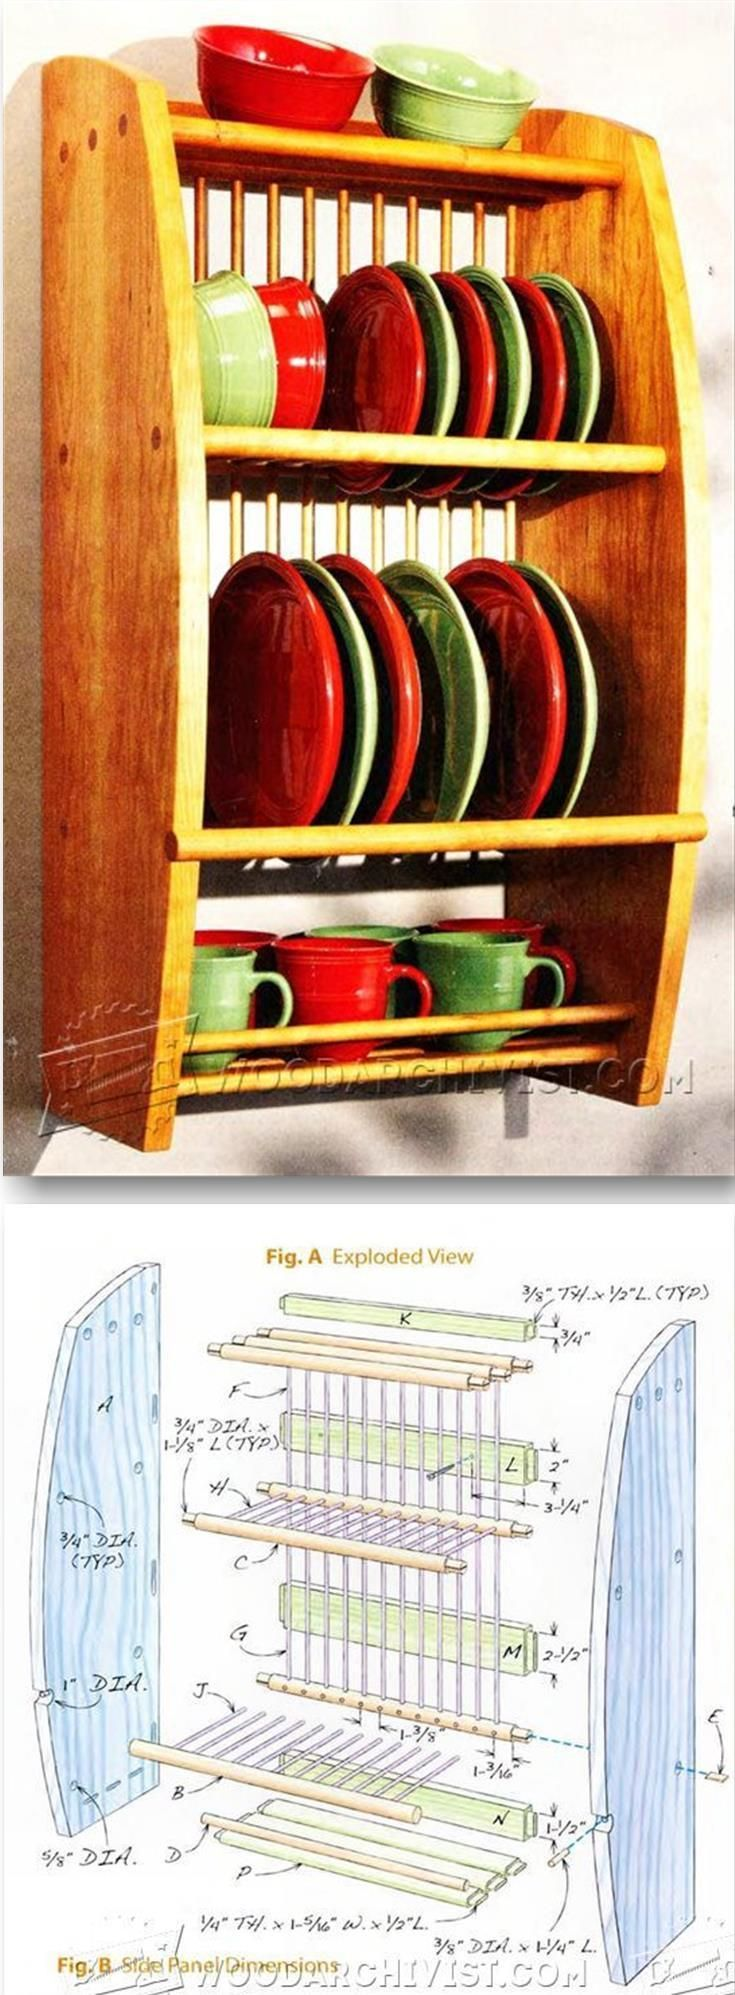 Under cabinet plate rack plans free - Plate Rack Plans Furniture Plans And Projects Woodarchivist Com